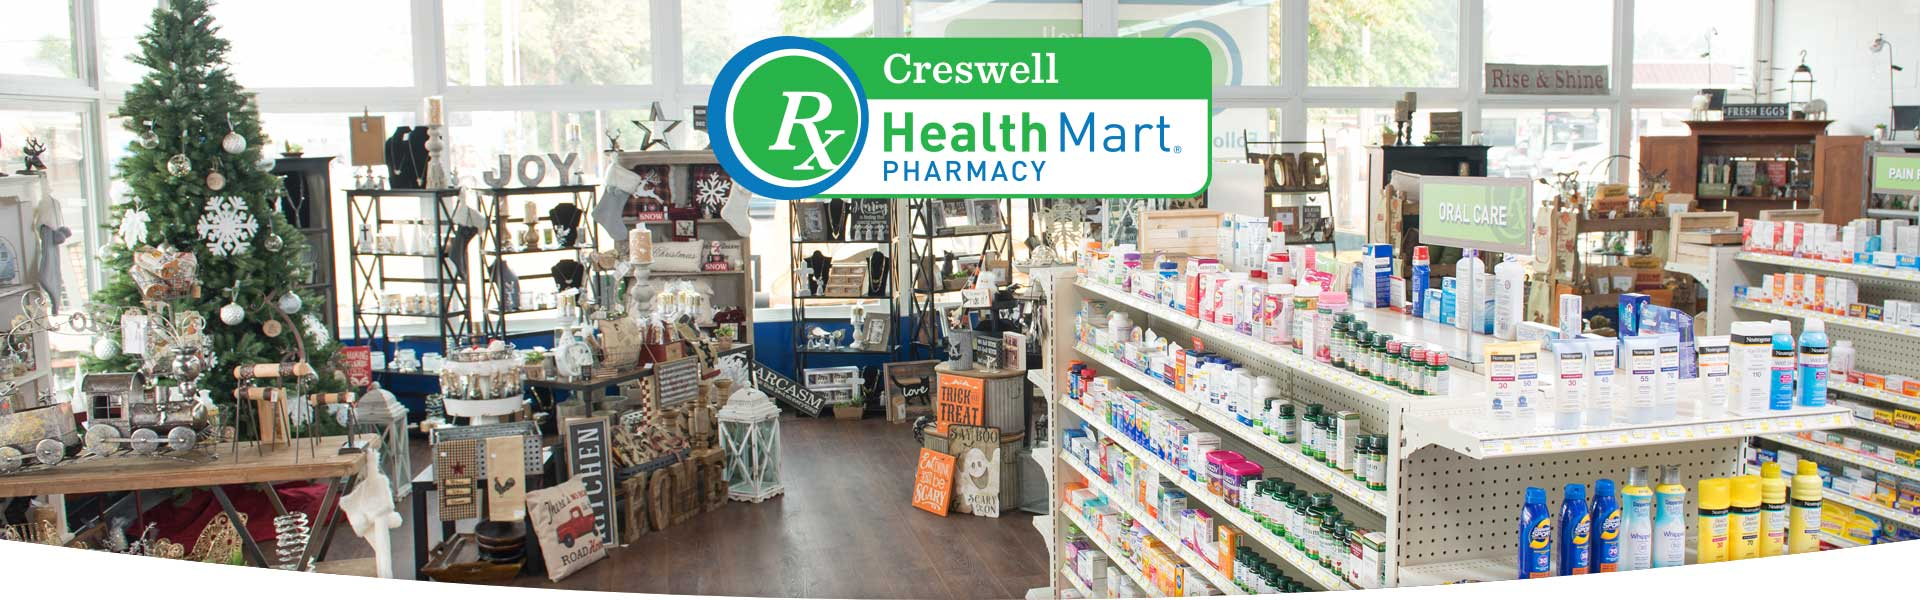 creswell pharmacy